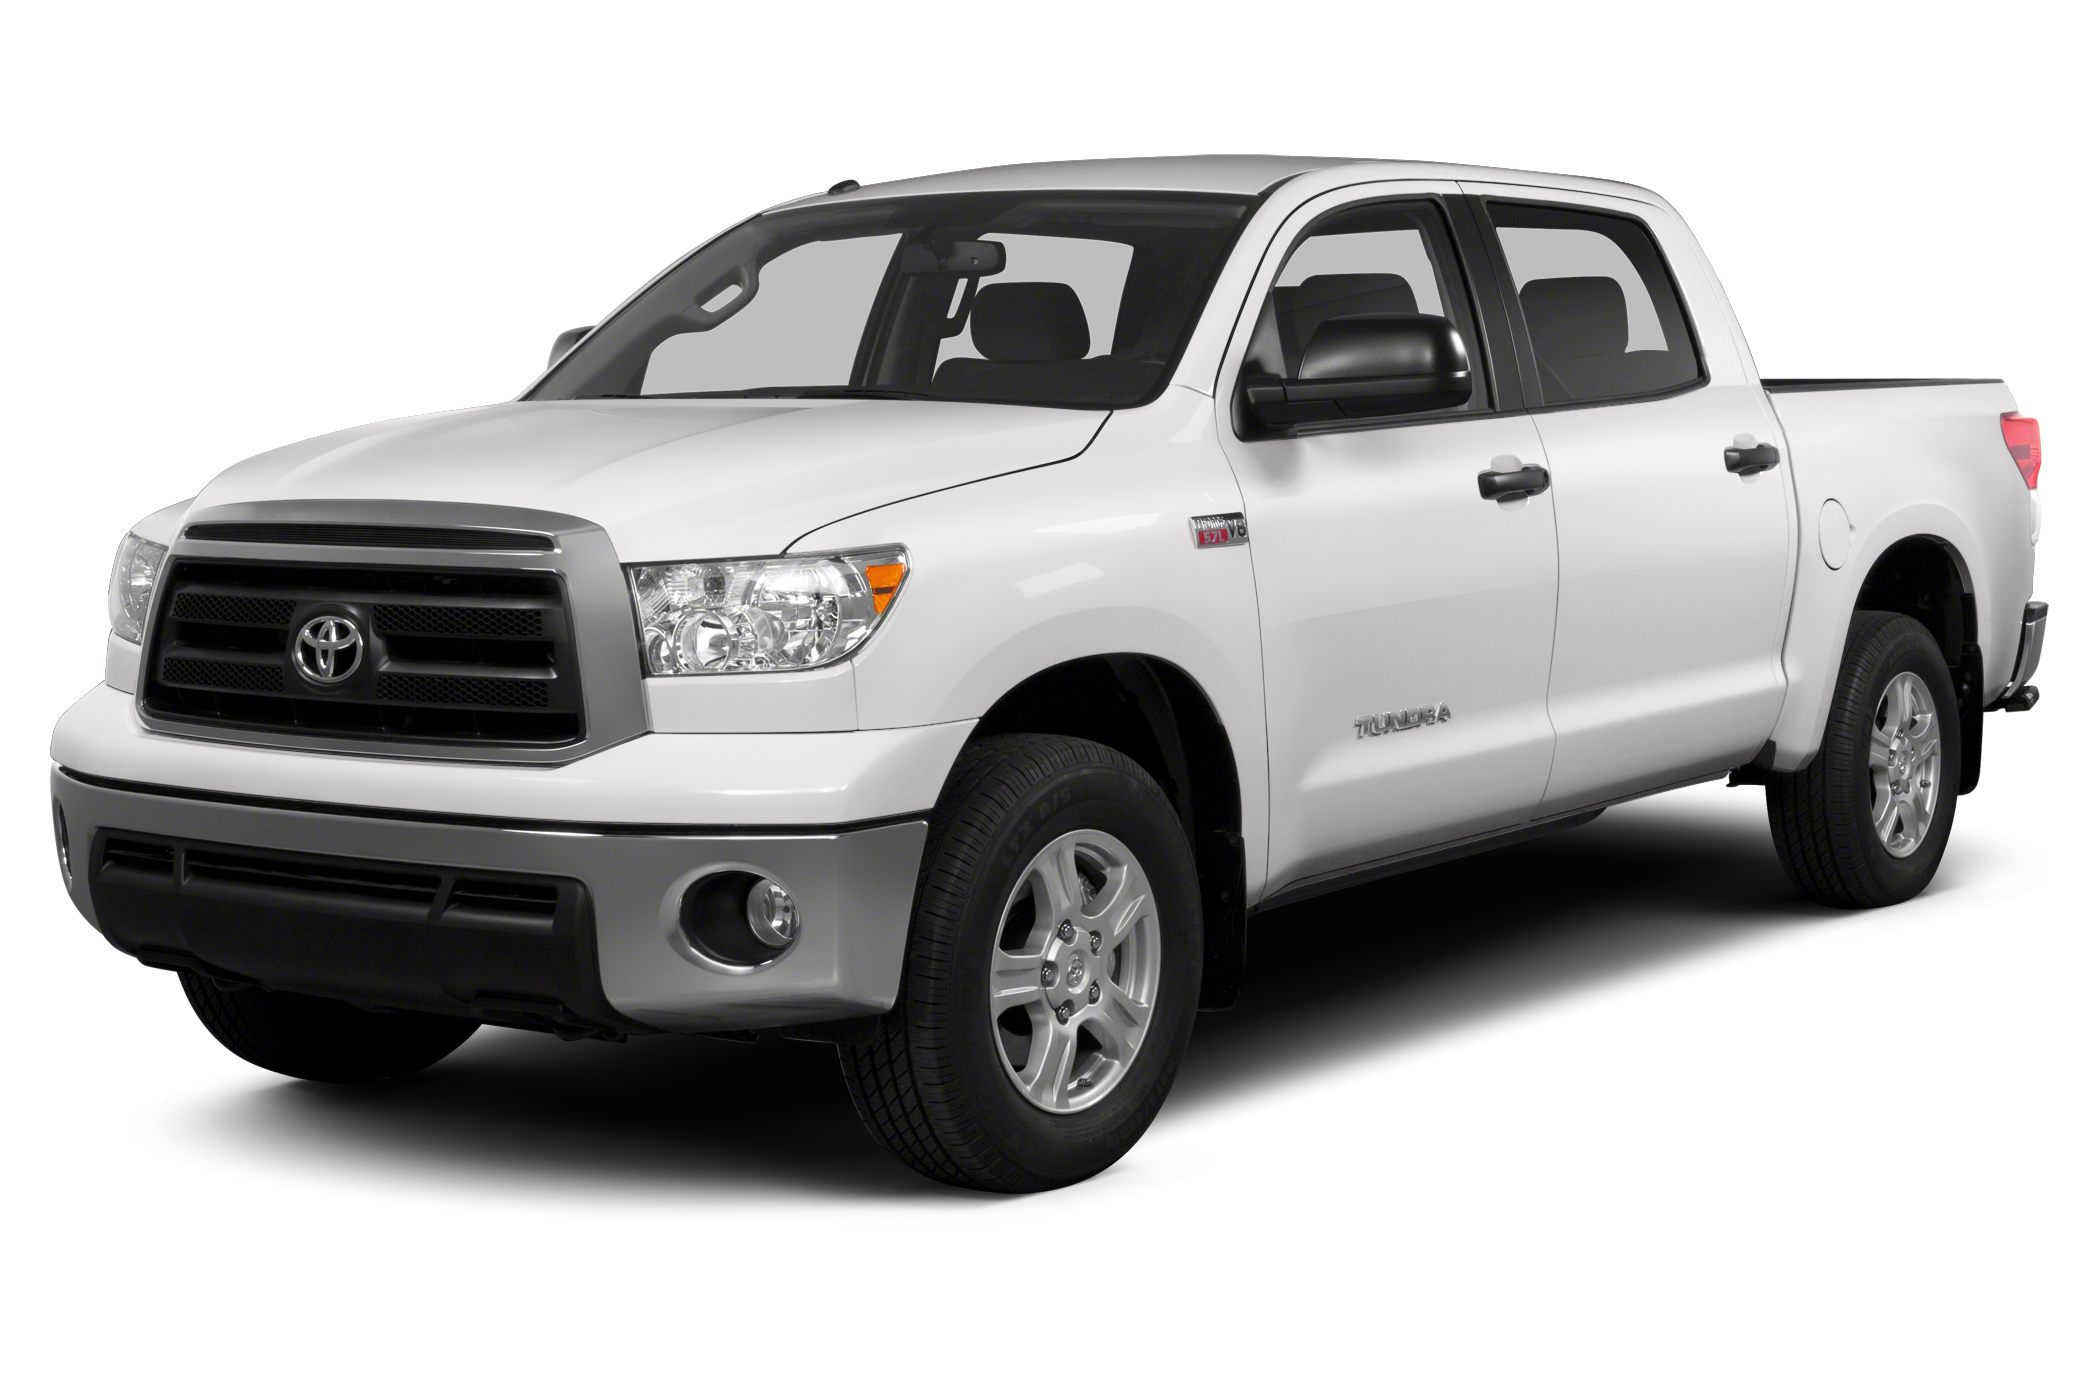 2013 Toyota Tundra Platinum 5.7L V8 4x4 Crew Max 5.6 ft. box 145.7 in. WB  Specs and Prices